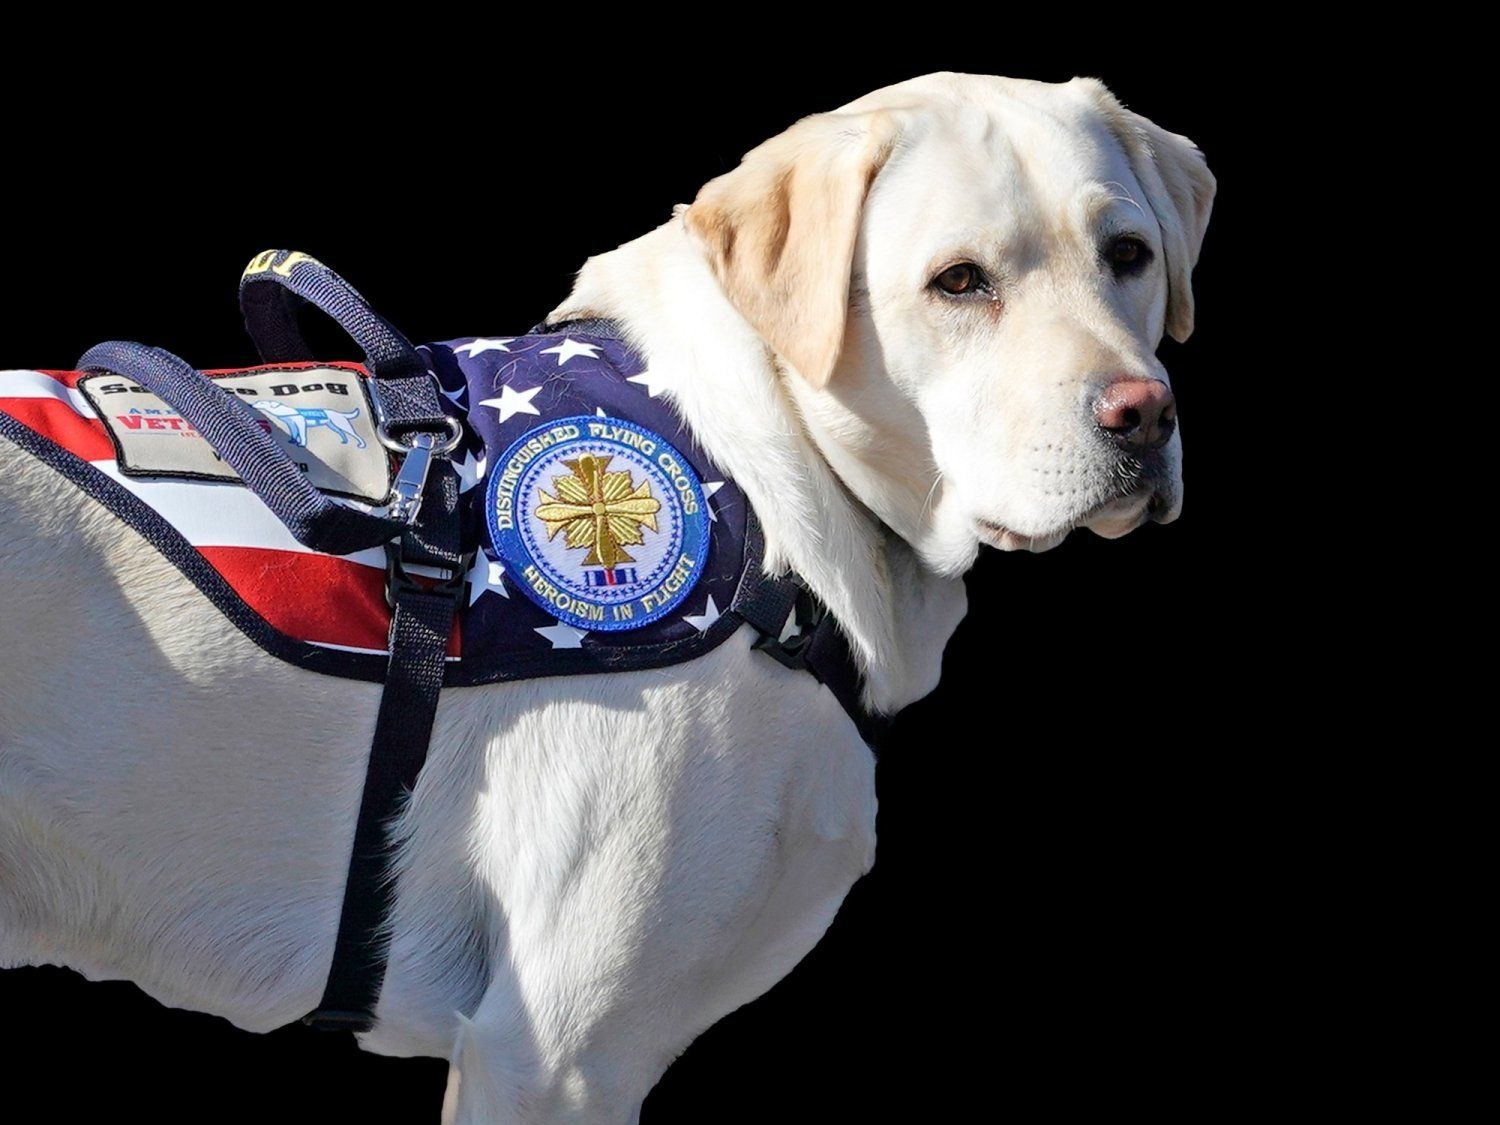 Sully, former President George H.W. Bush's service dog, graphic element on black